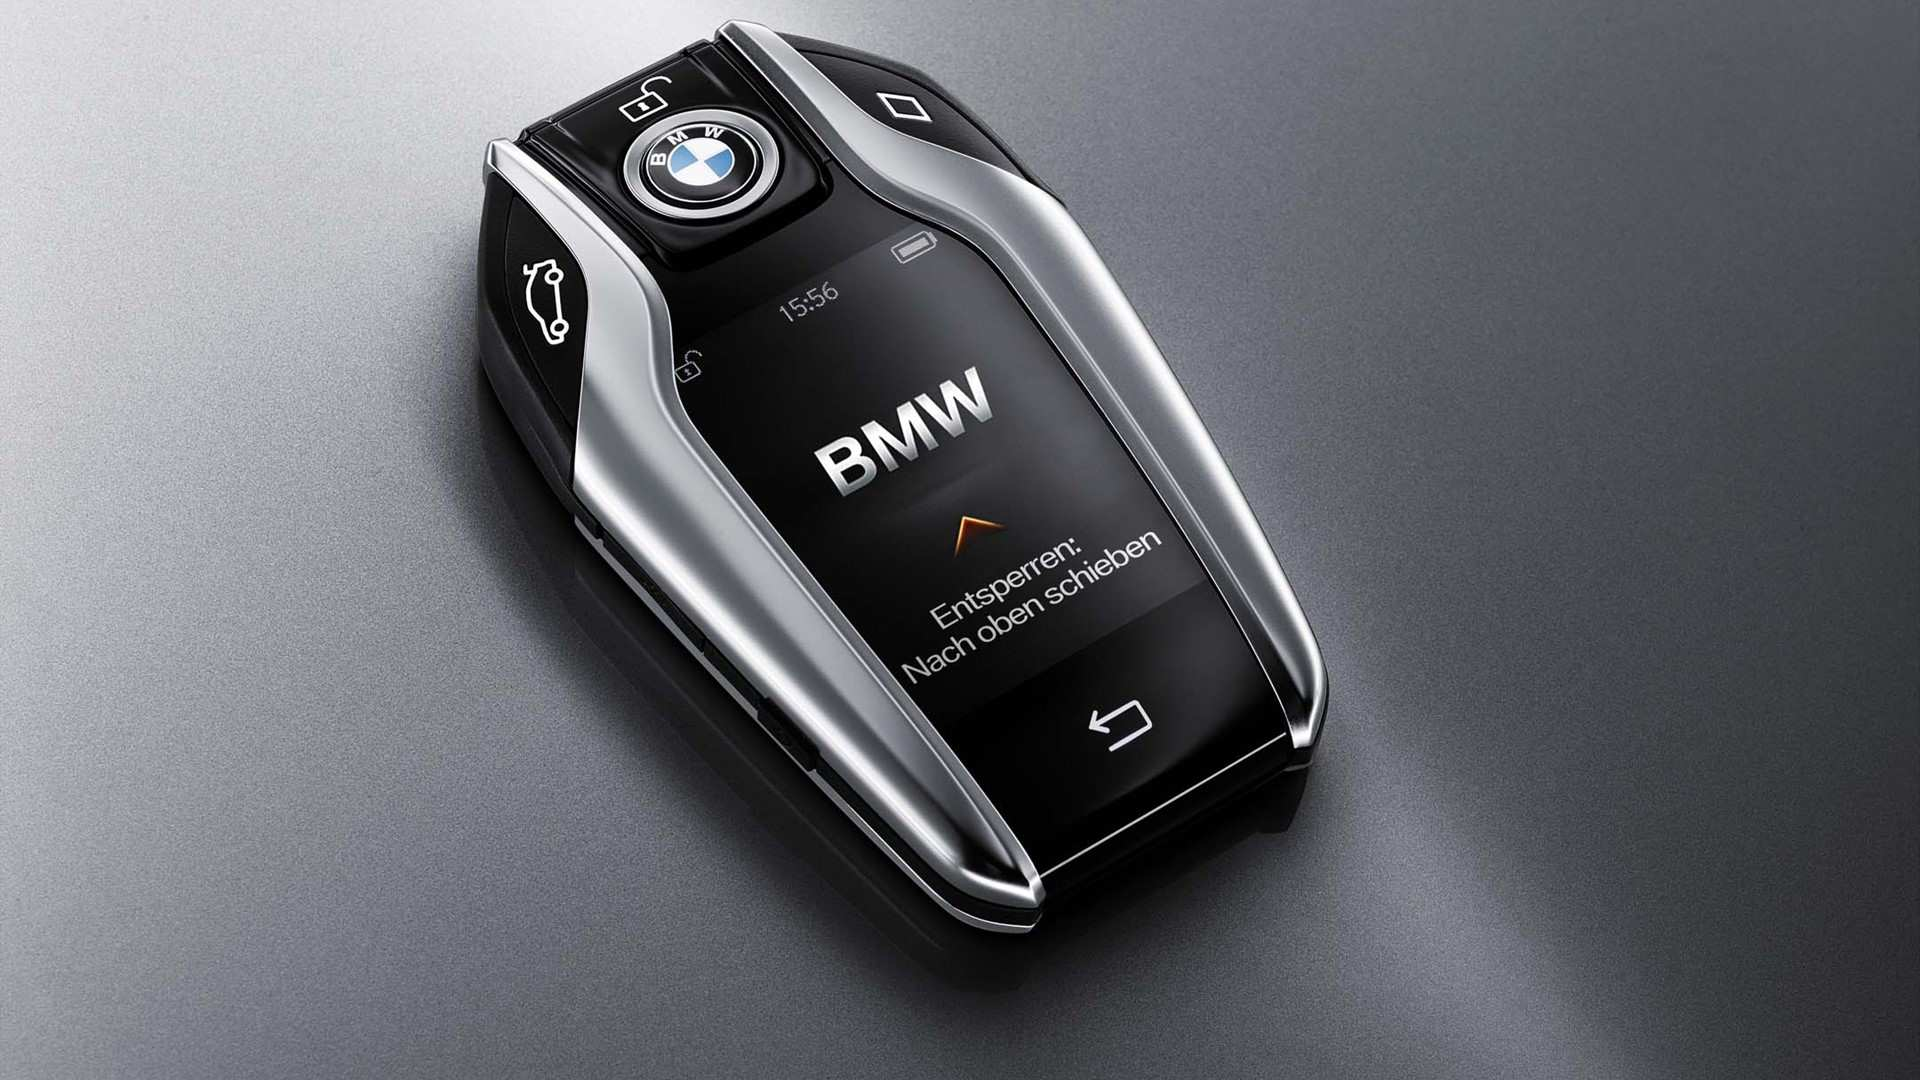 51 Concept of 2019 Bmw Key Fob Release with 2019 Bmw Key Fob